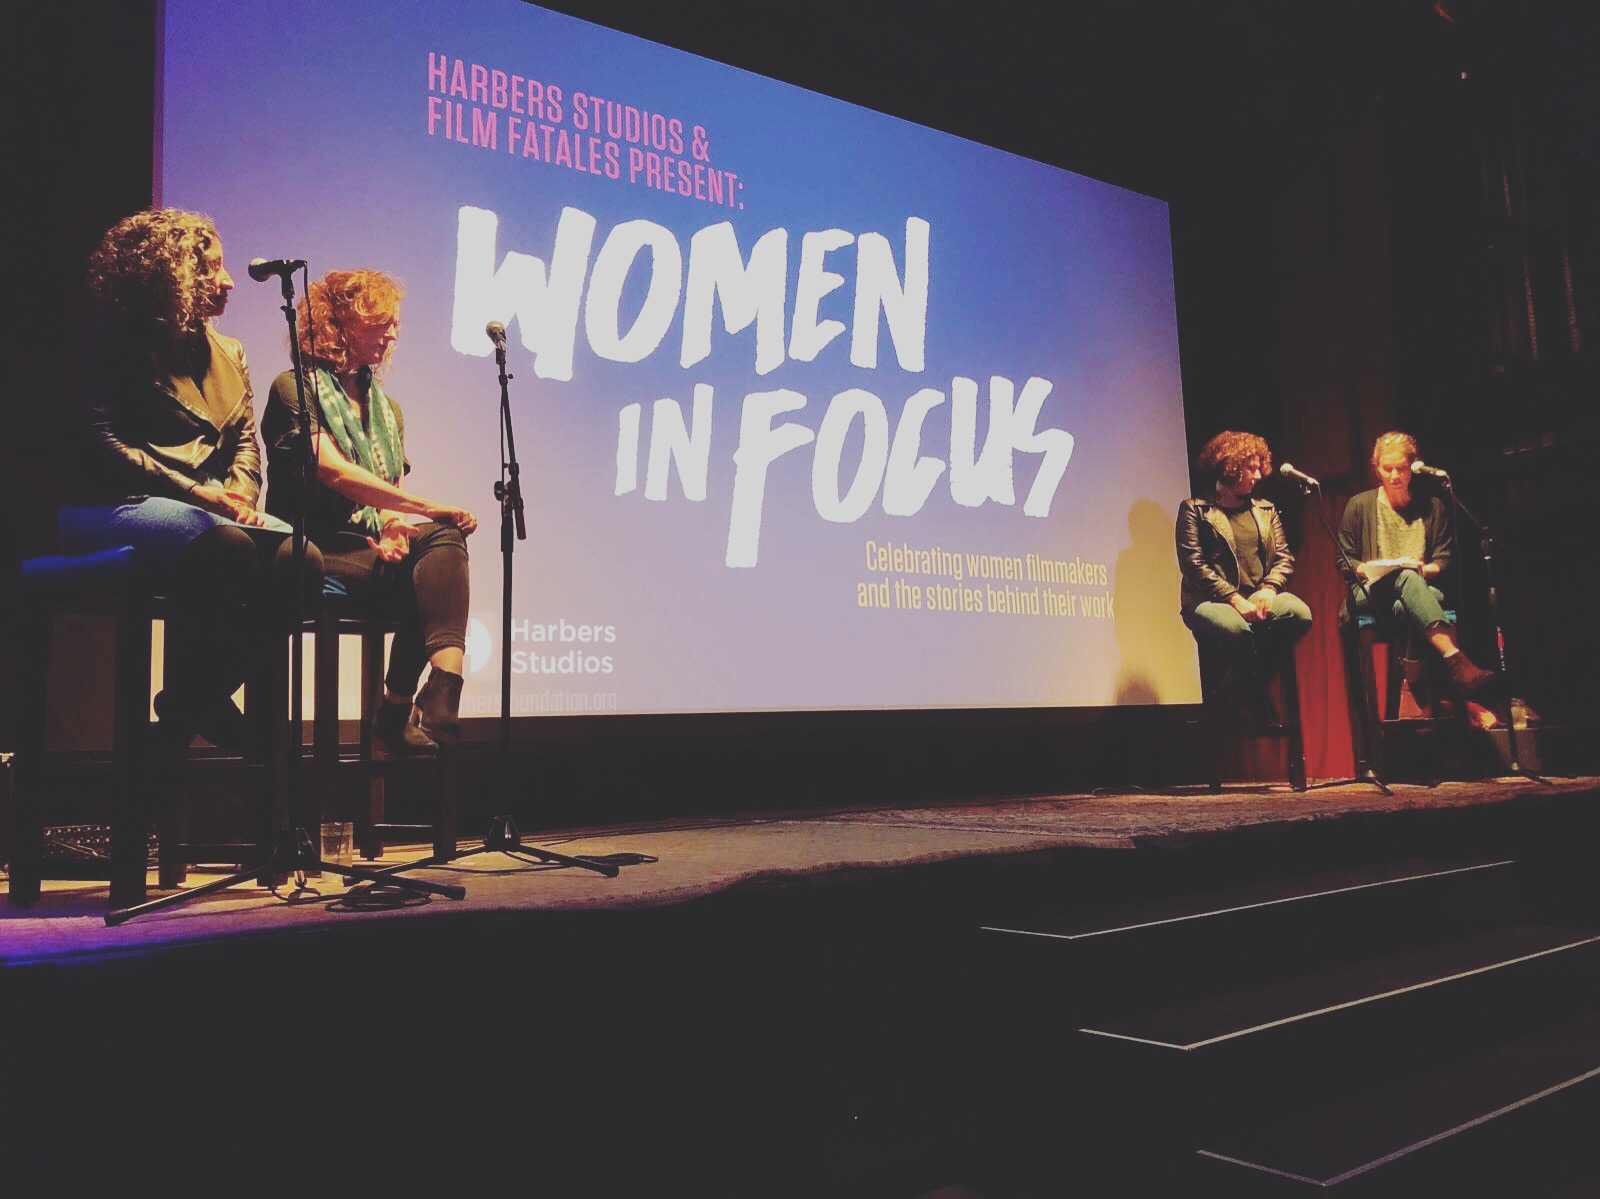 Marie-Hélène moderates Women in Focus: Celebrating women filmmakers and the stories behind their work - Marie-Hélène Carleton moderates a panel presented by Harbers Studios and Film Fatales where three female documentary filmmakers shared their experiences and insights about working in difficult locations.Click here to read more.